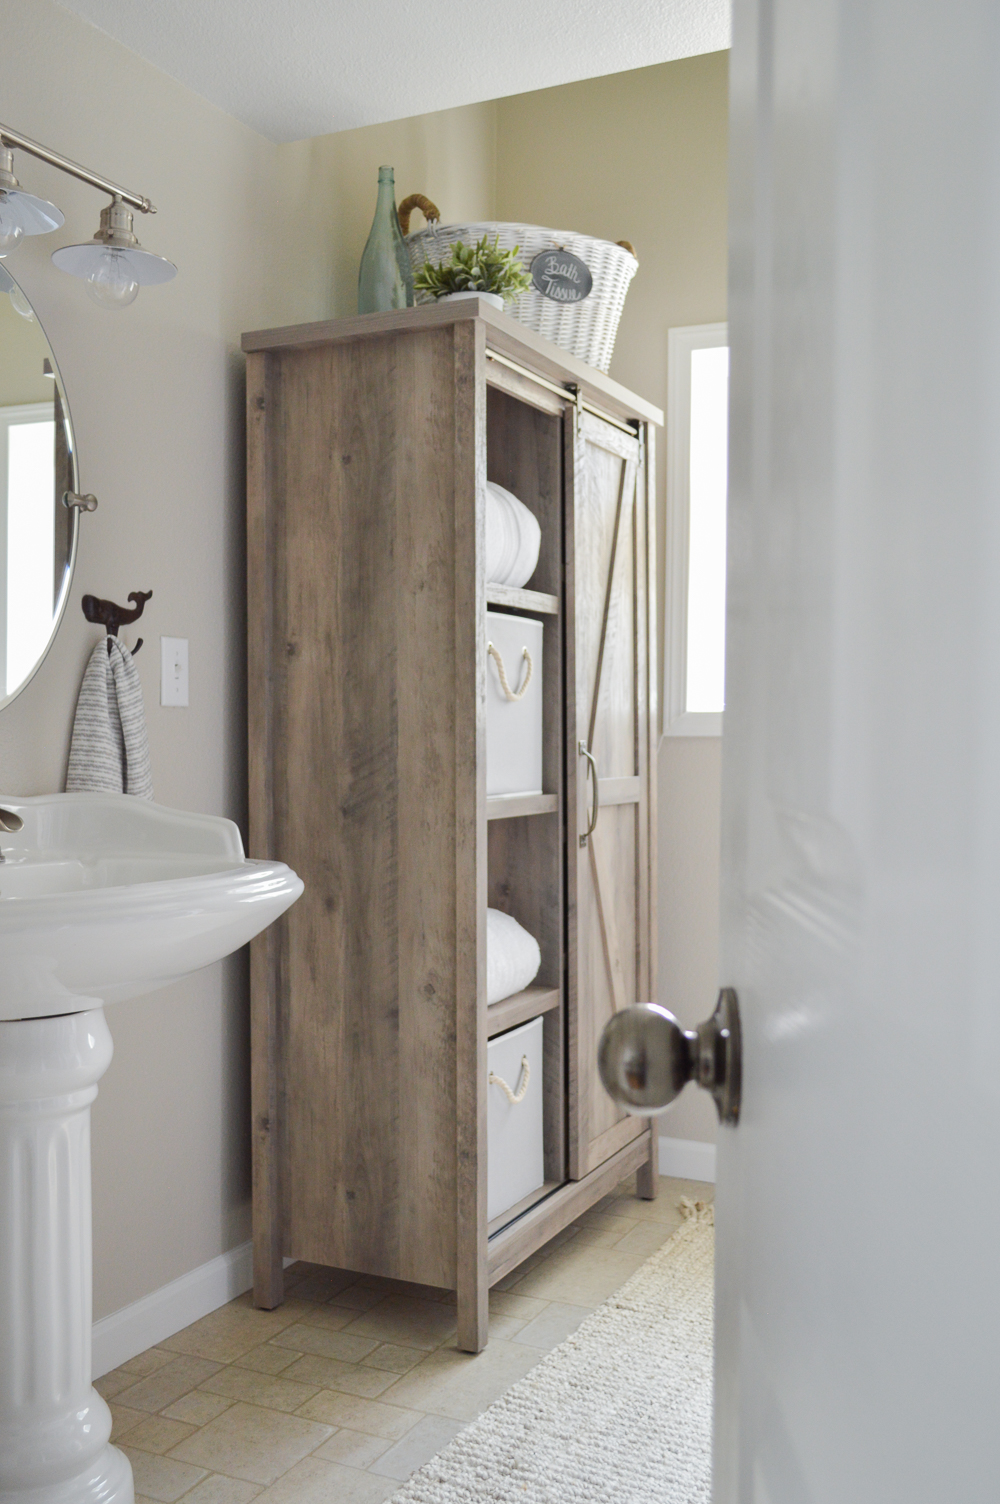 The Little Cottage Bathroom Makeover at Fox Hollow Cottage - Coastal cottage farmhouse blend with Better Homes & Gardens